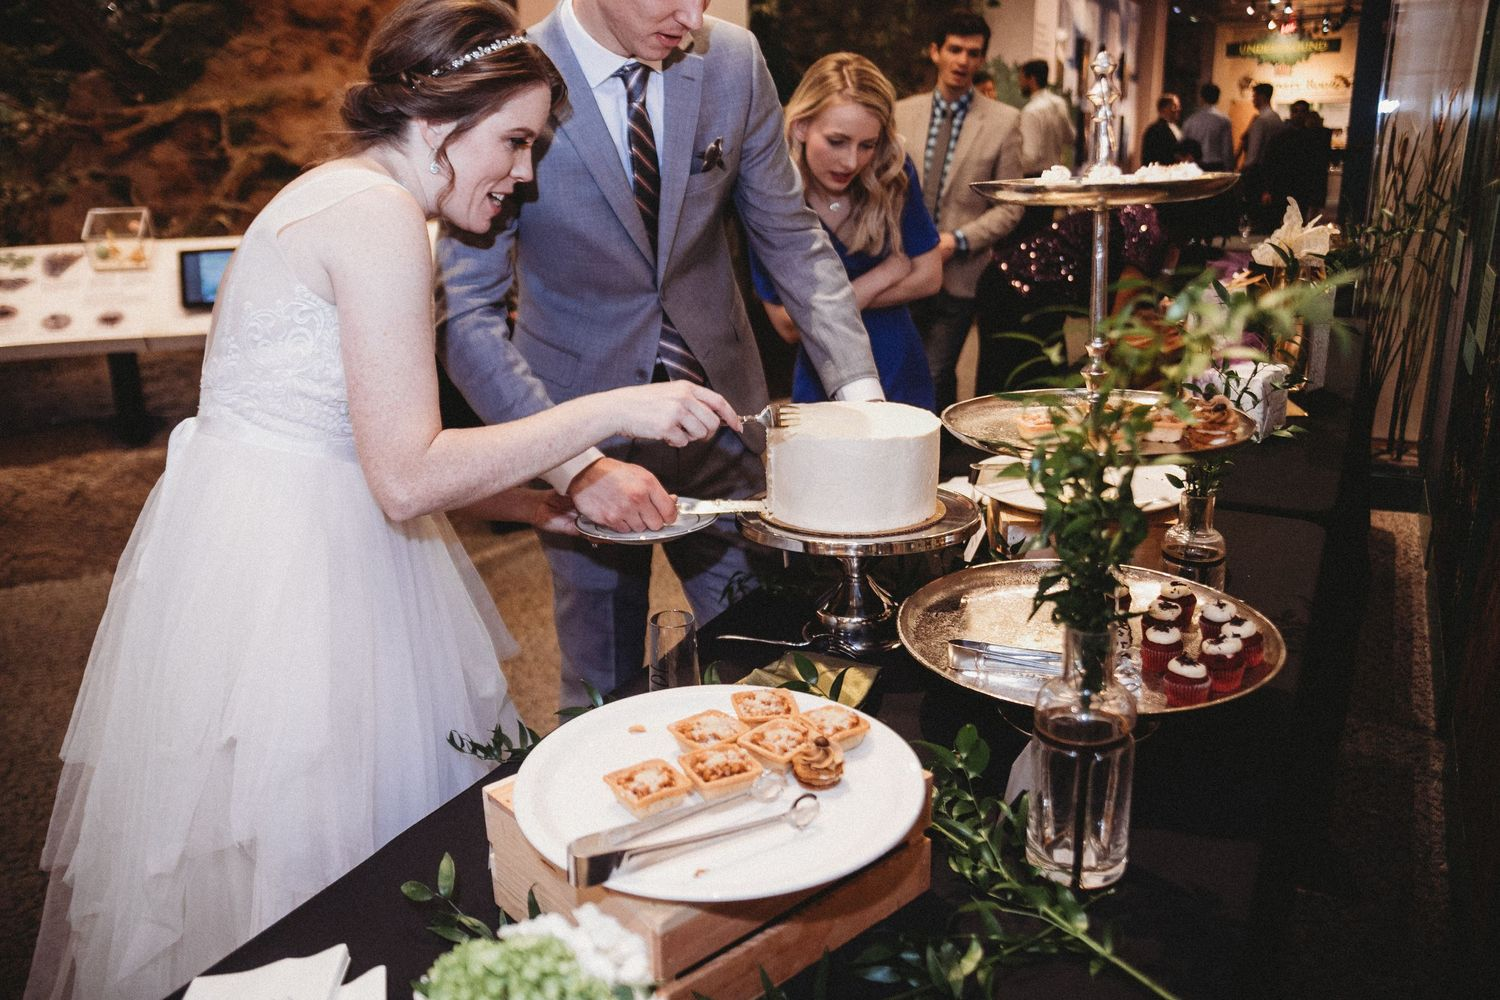 bride trying to get slice of cake onto plate